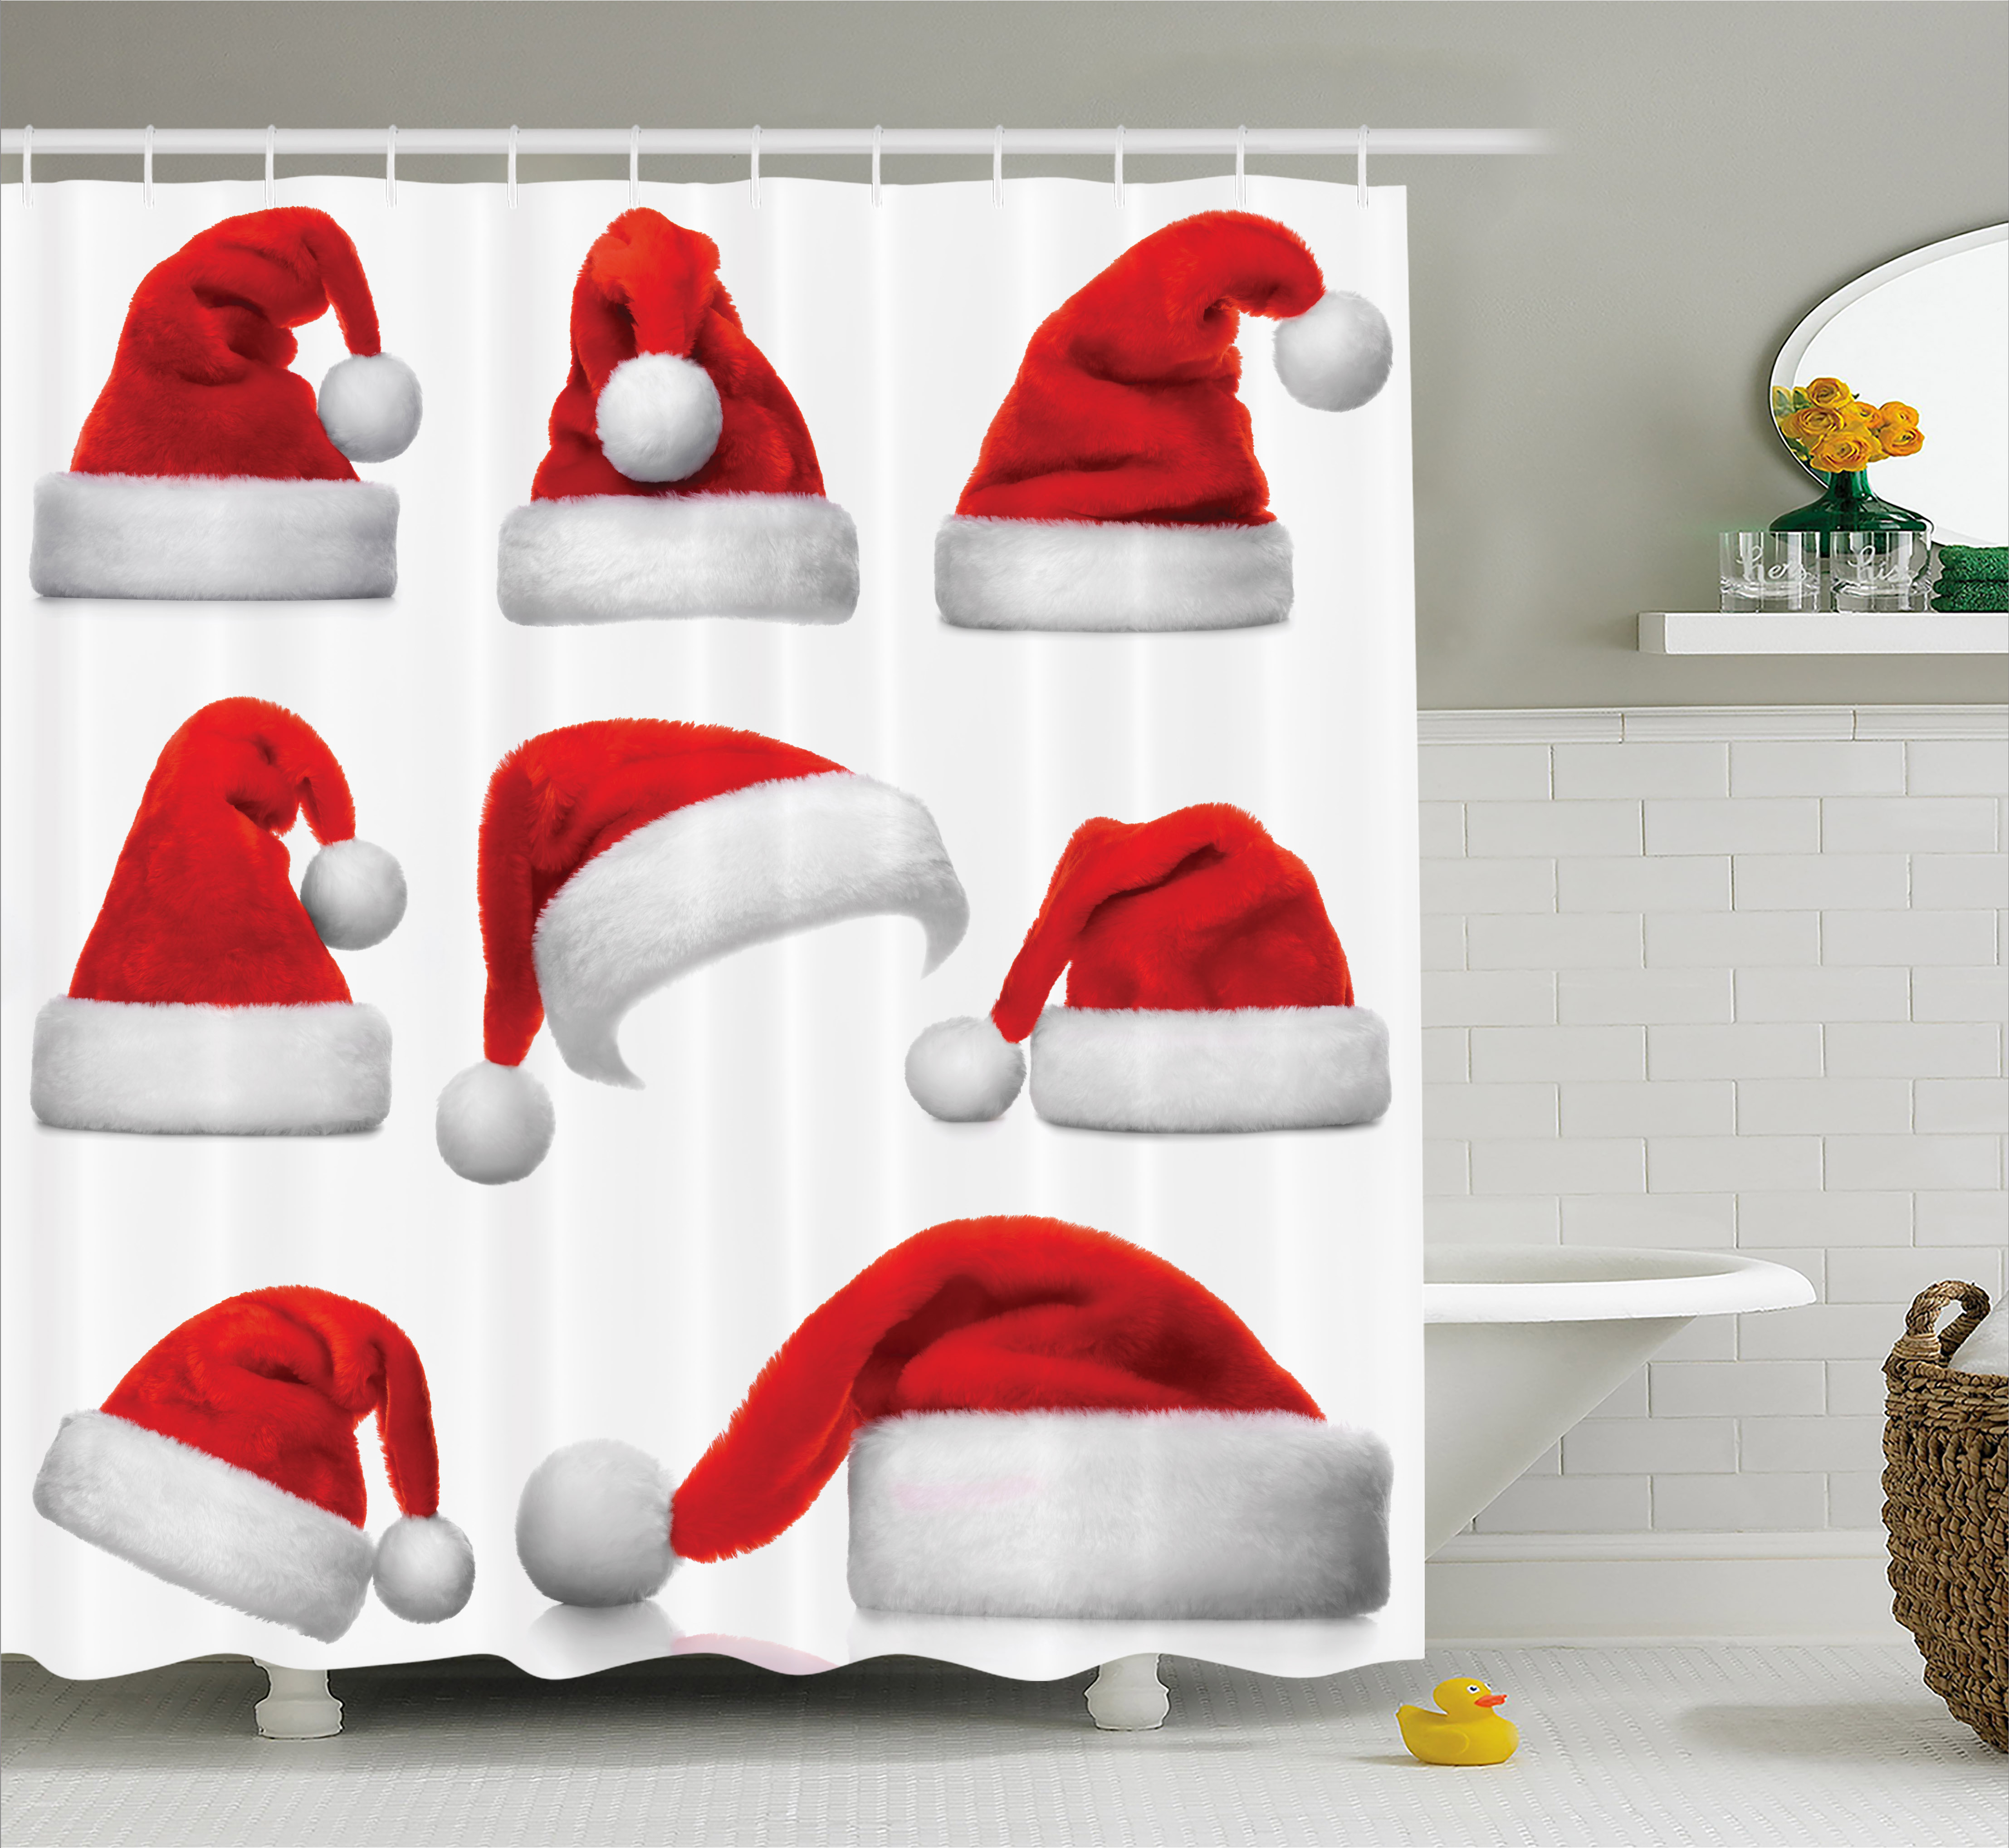 Christmas Shower Curtain, Classical Santa Claus Hats Xmas New Year Celebration Tradition Party Theme, Fabric Bathroom Set with Hooks, Red and White, by Ambesonne